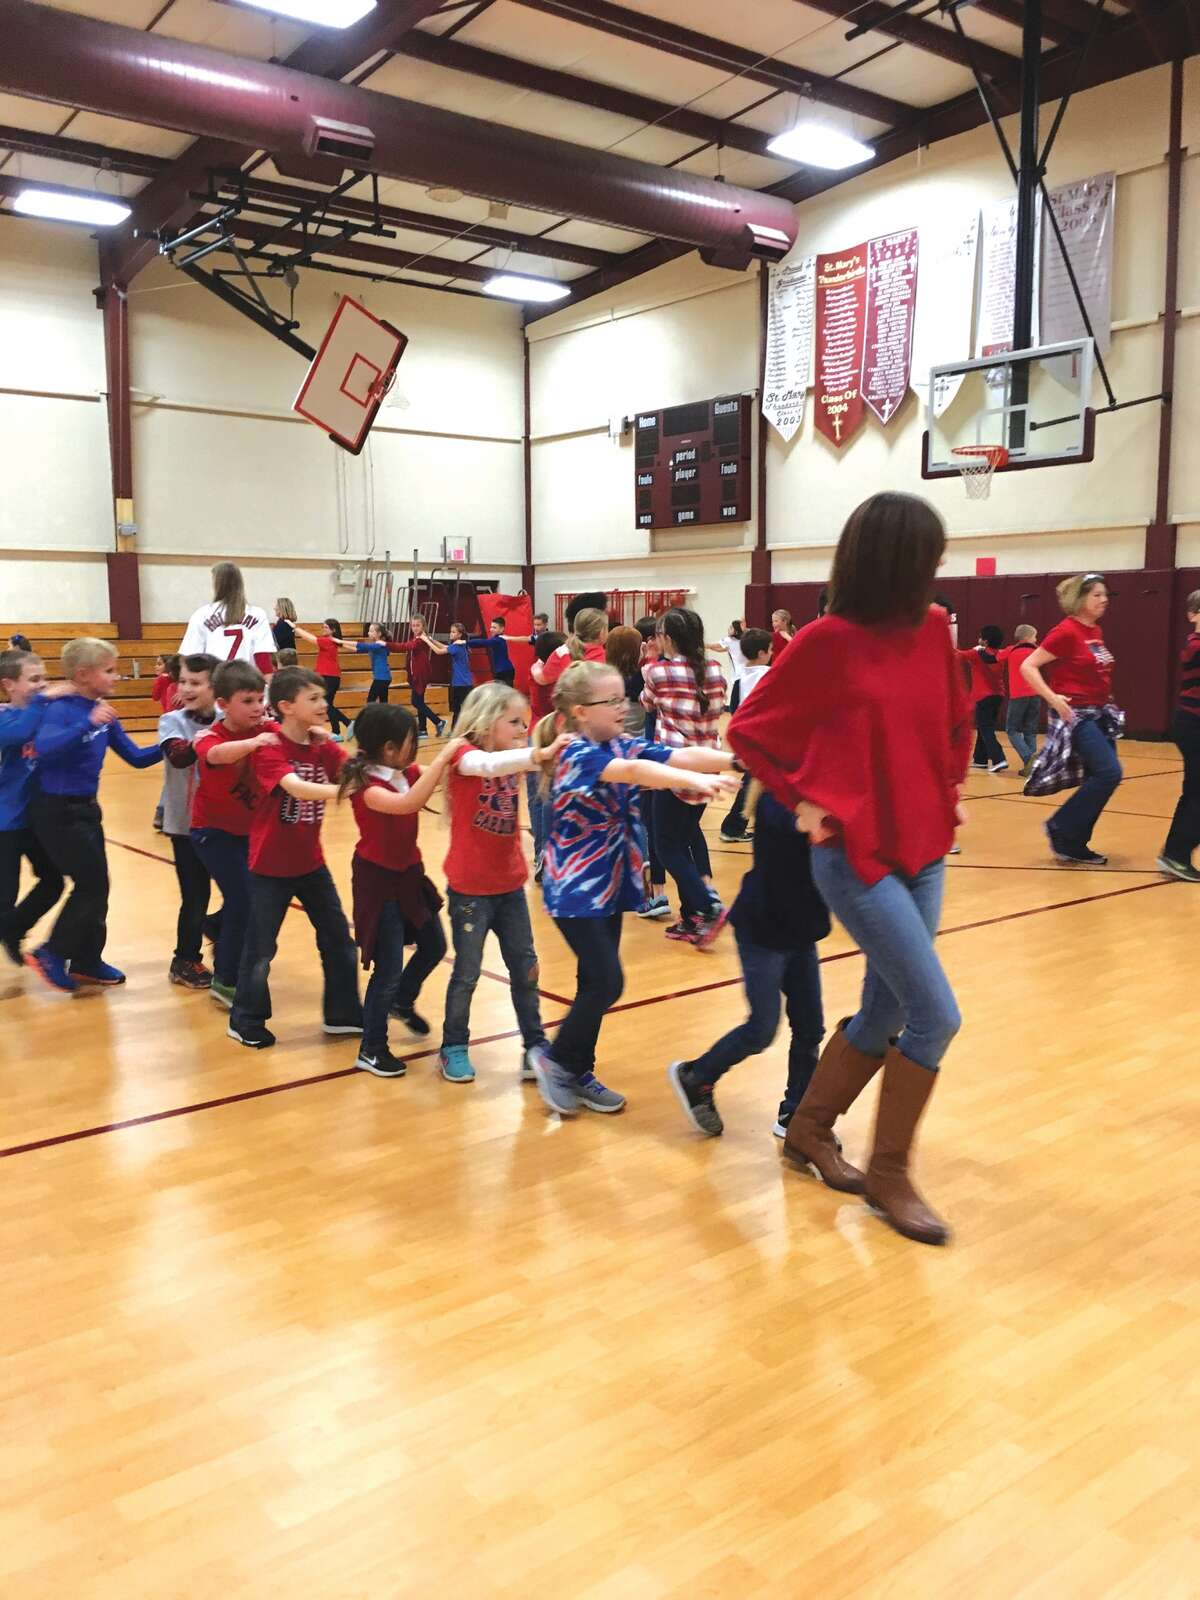 St. Mary's Catholic School conducted a sock hop Wednesday. The event was one of several that marked Catholic Schools Week. Students had an opportunity to skate at the YMCA on Jan. 28 in addition to the service acts they performed.